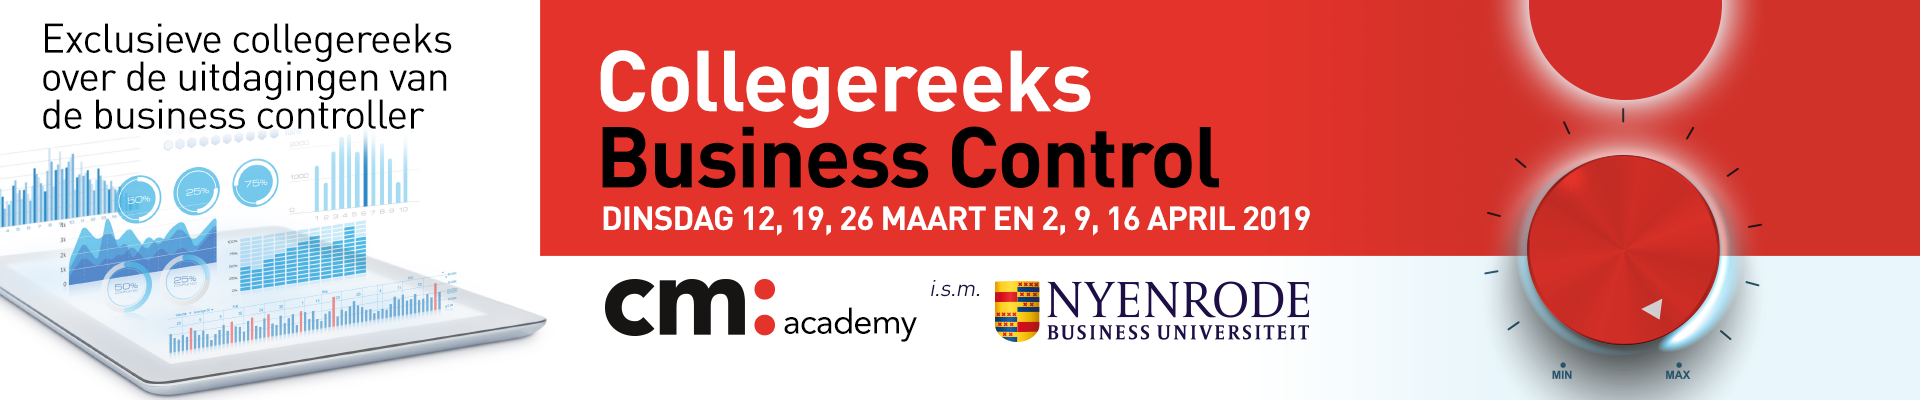 Collegereeks Business Control